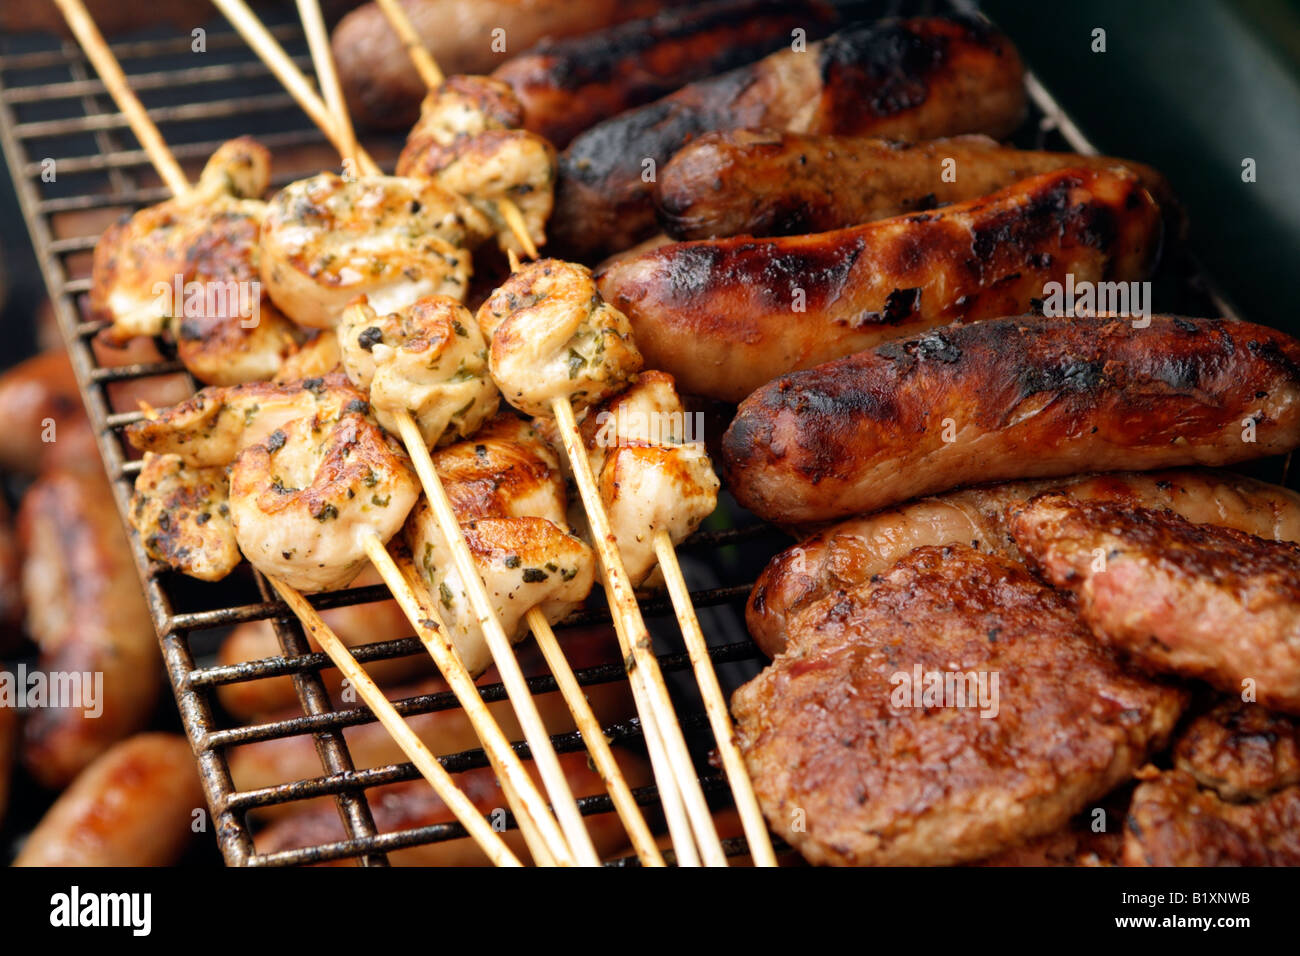 food on bbq grill cooking chicken and sausages stock photo 18412951 alamy. Black Bedroom Furniture Sets. Home Design Ideas